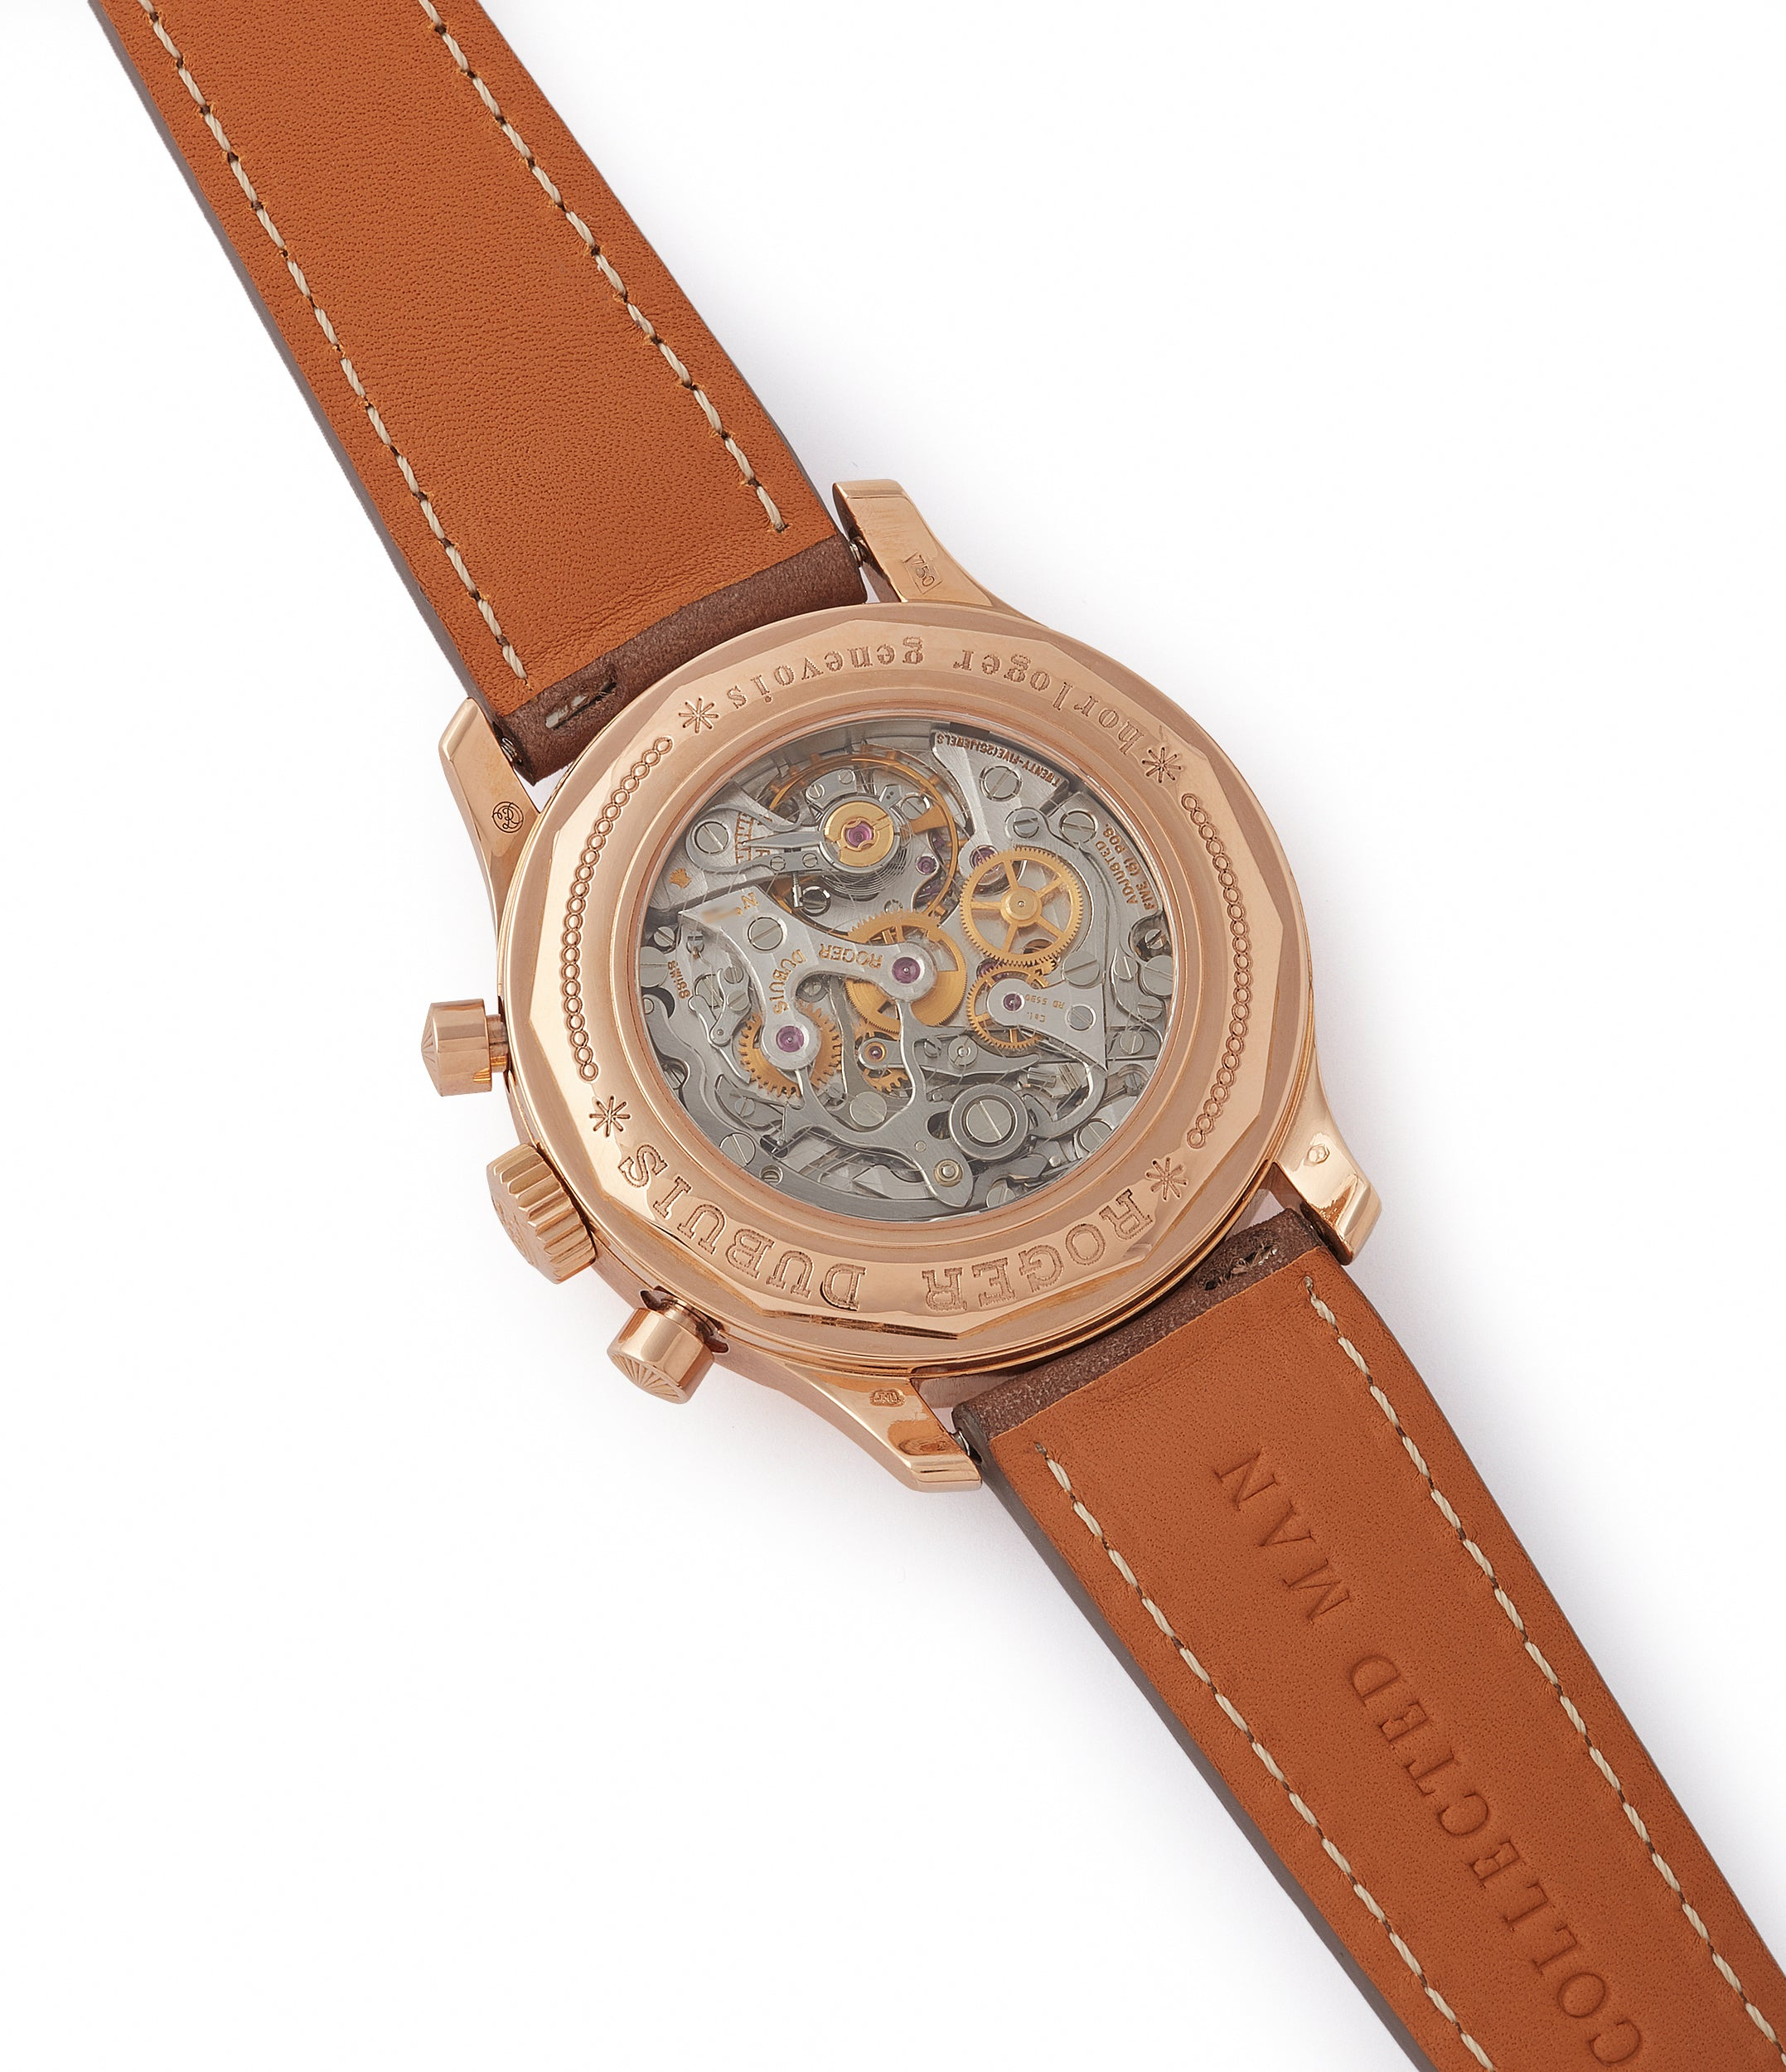 manual-winding Roger Dubuis Hommage bi-retrograde Chronograph H40 560 limited edition rare rose gold lacquer dial watch for sale online at A Collected Man London UK specialist of rare watches